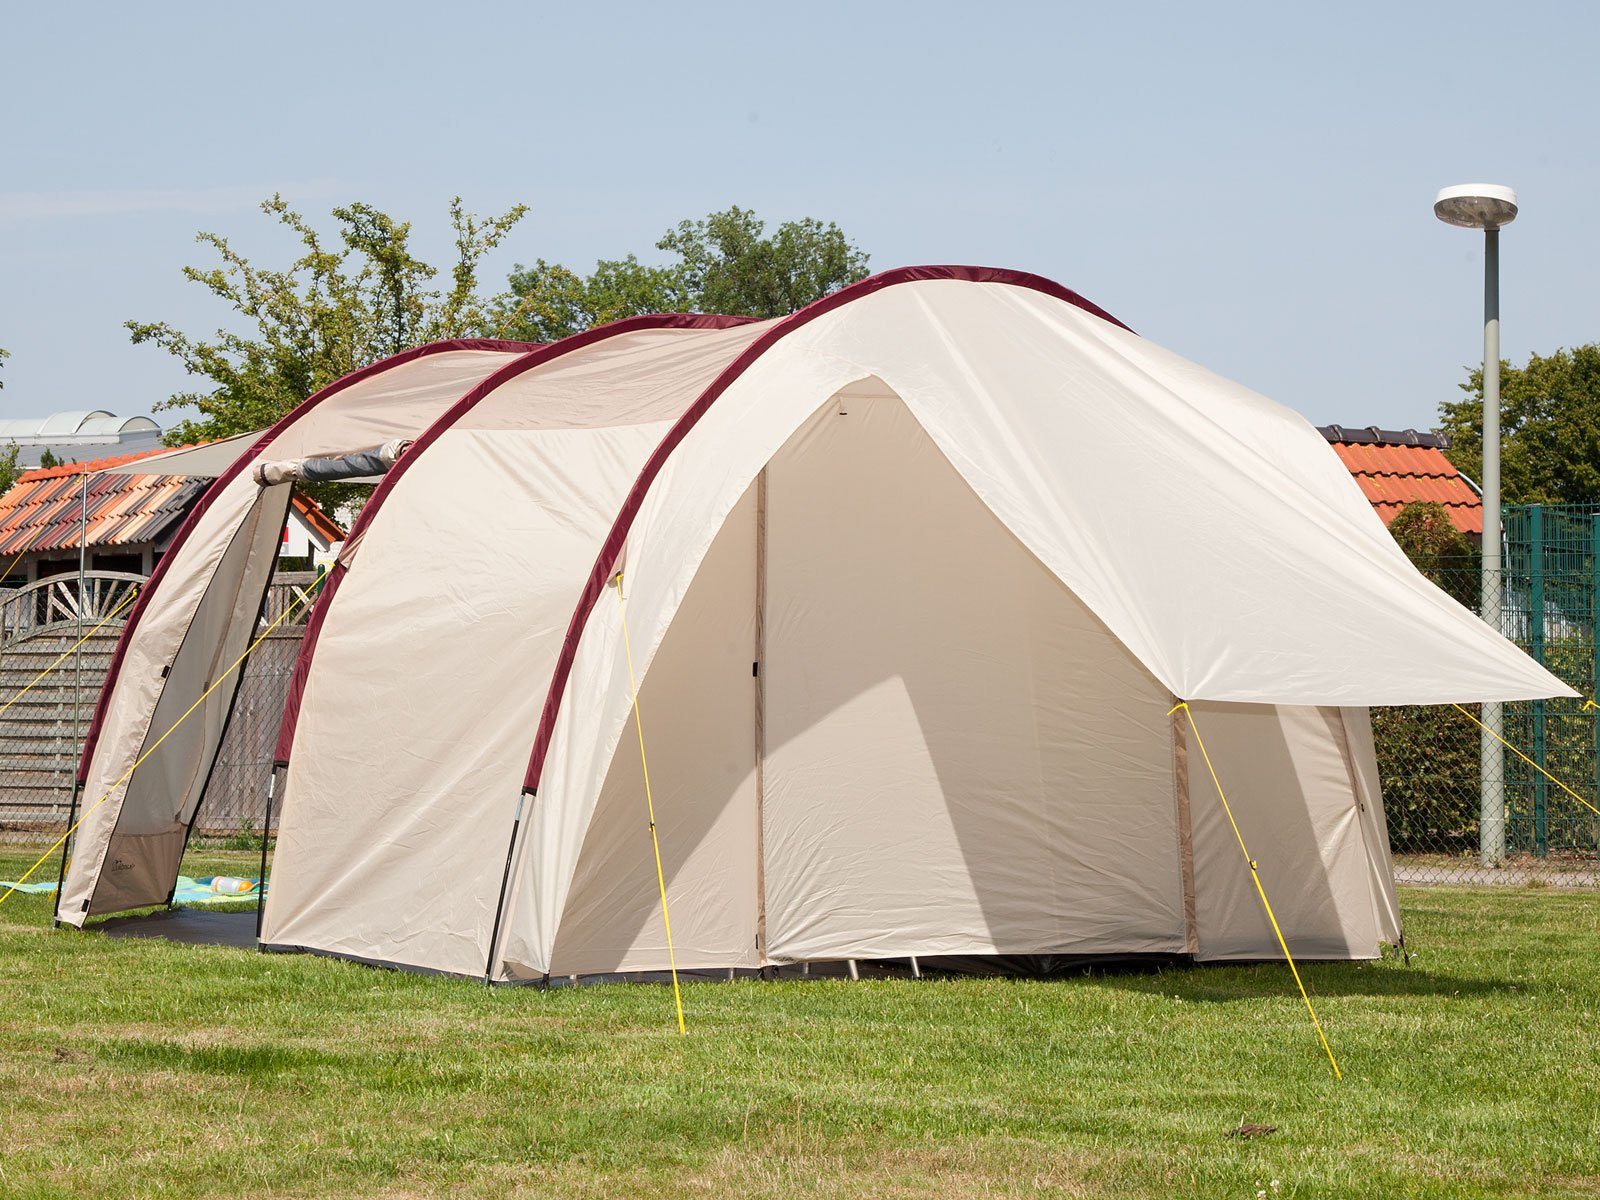 Skandika Camper Tramp Free-Standing Minivan Awning Tent with 2-Berth Sleeping Cabin and 210 cm Peak Height, Sand/Red, 2 Persons 4